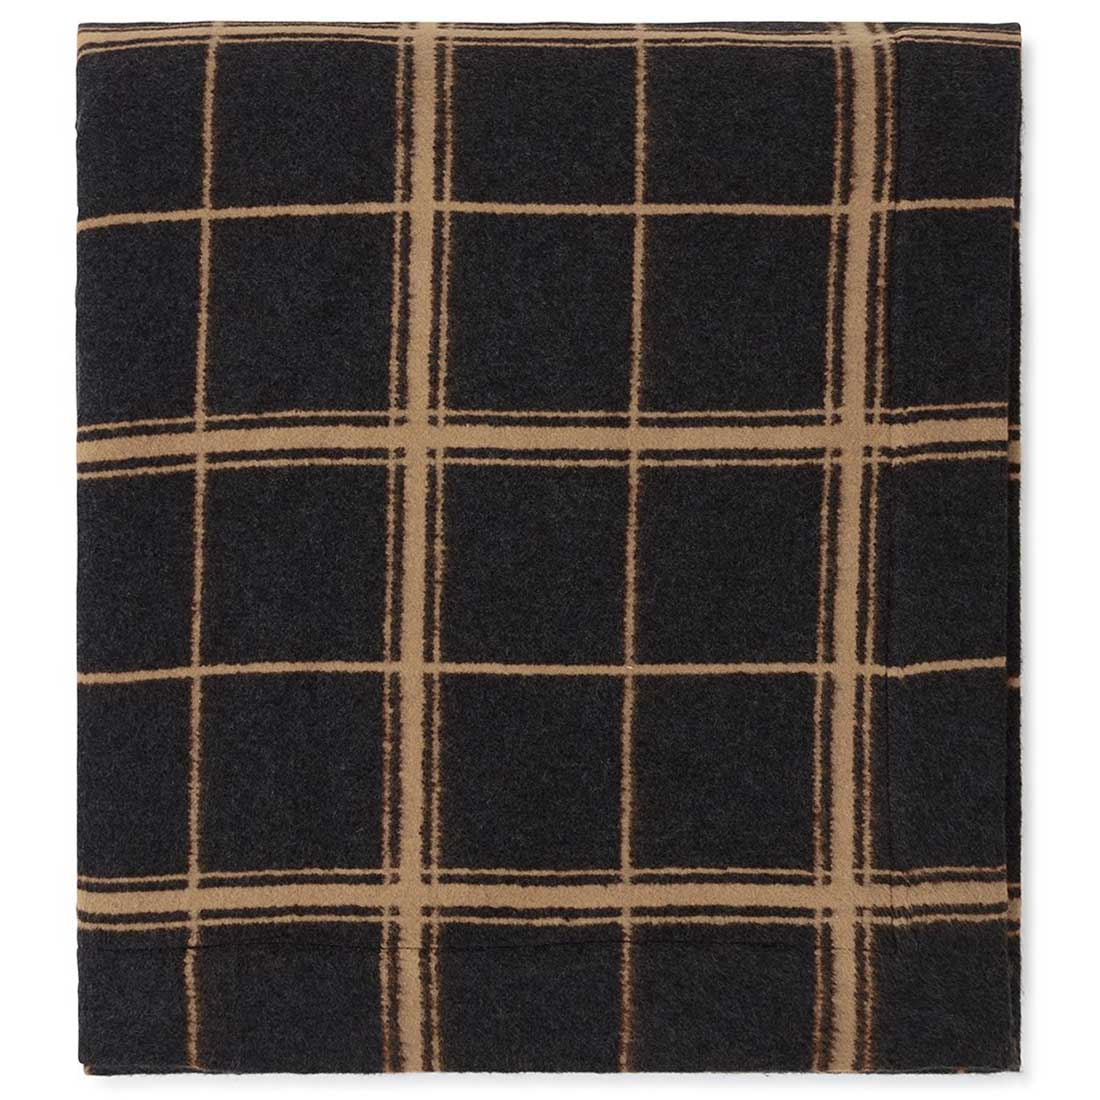 """LEXINGTON COMPANY - Bettüberwurf """"Checked brushed cotton"""""""